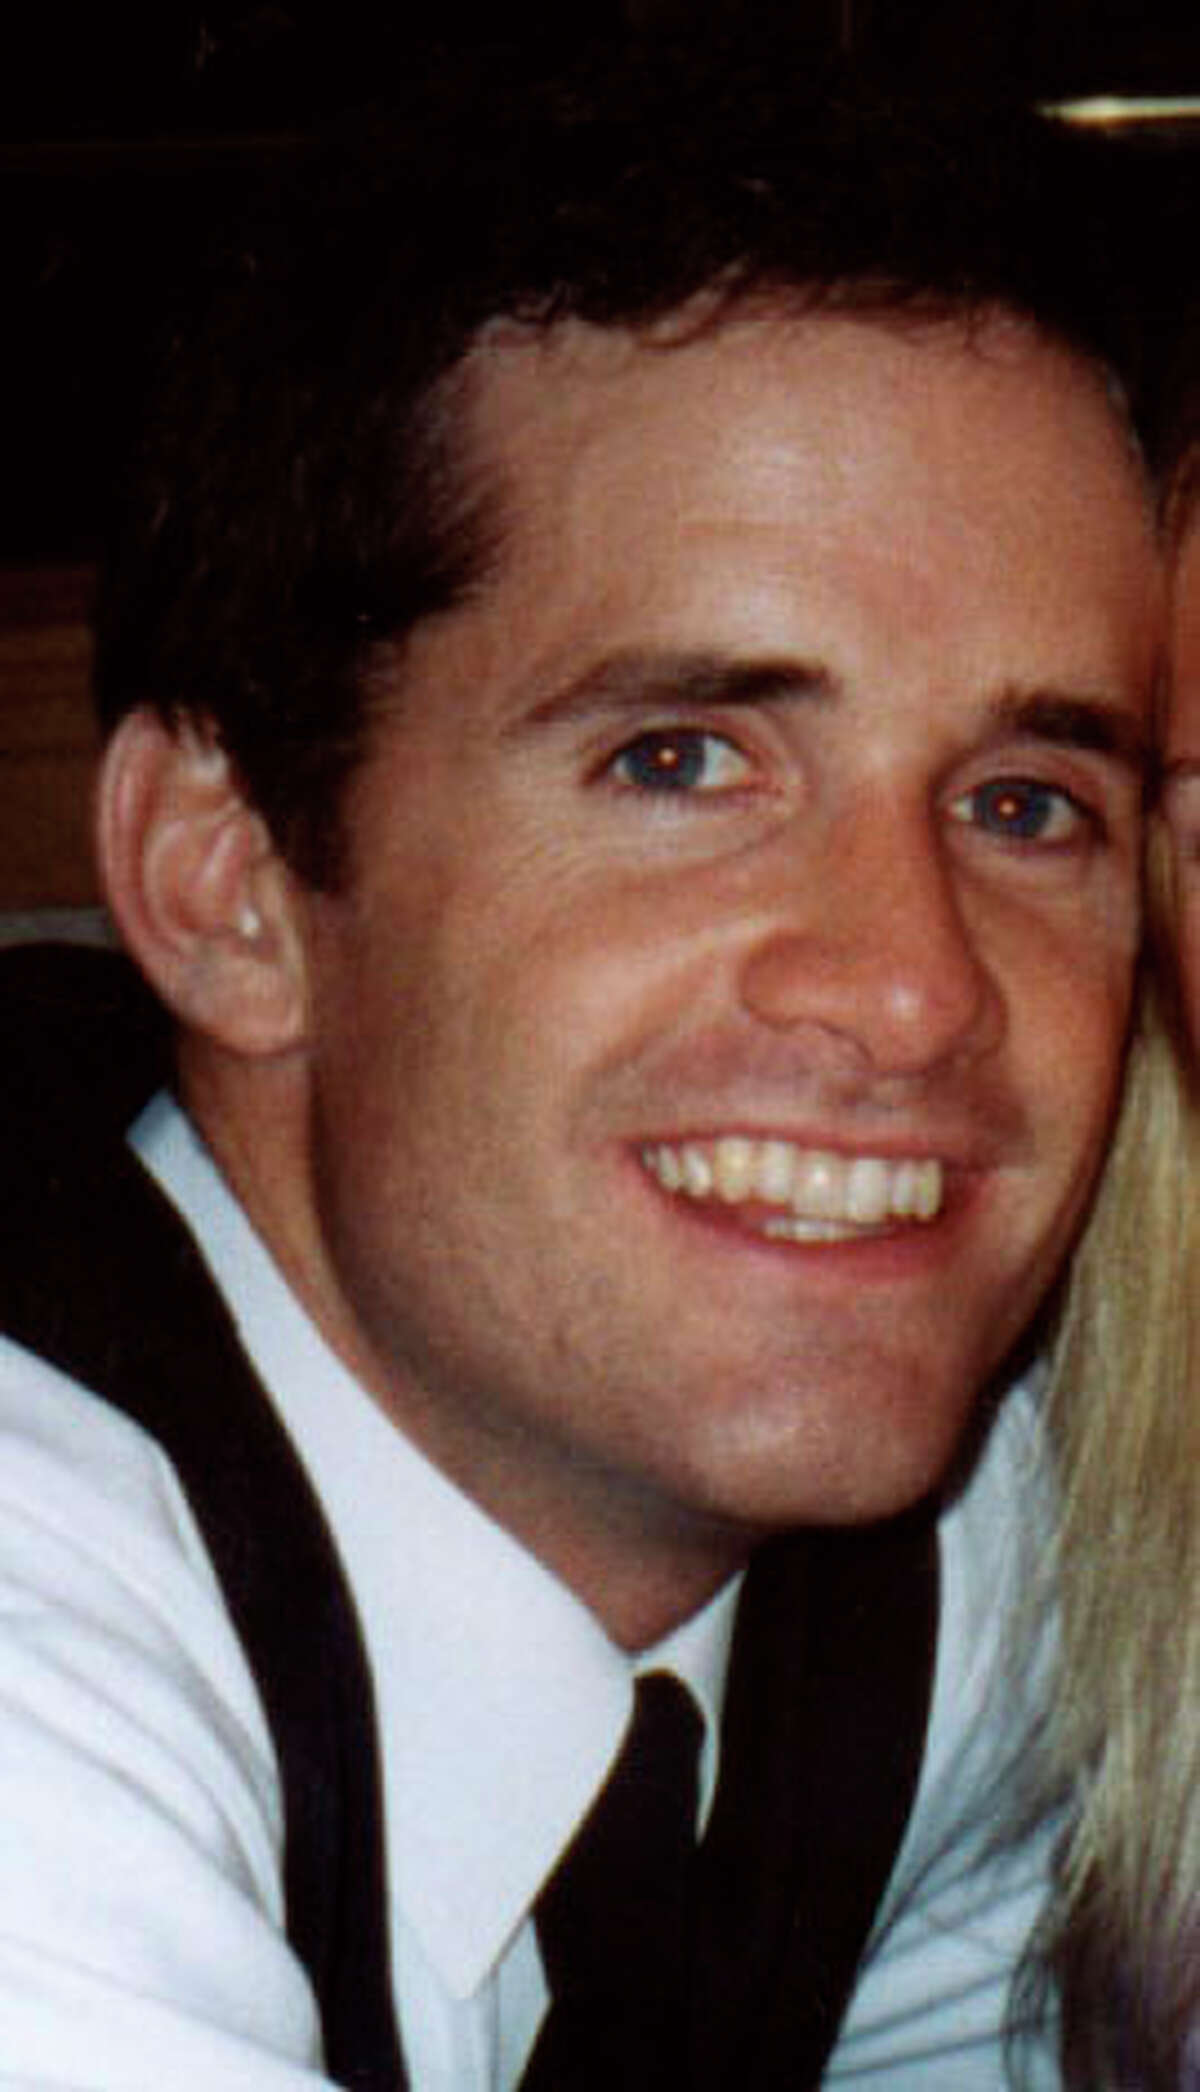 Stephen Mulderry, 33, was an equity trader and vice president with Keefe, Bruyette & Woods on the 89th floor of the South Tower at the World Trade Center in 2001.